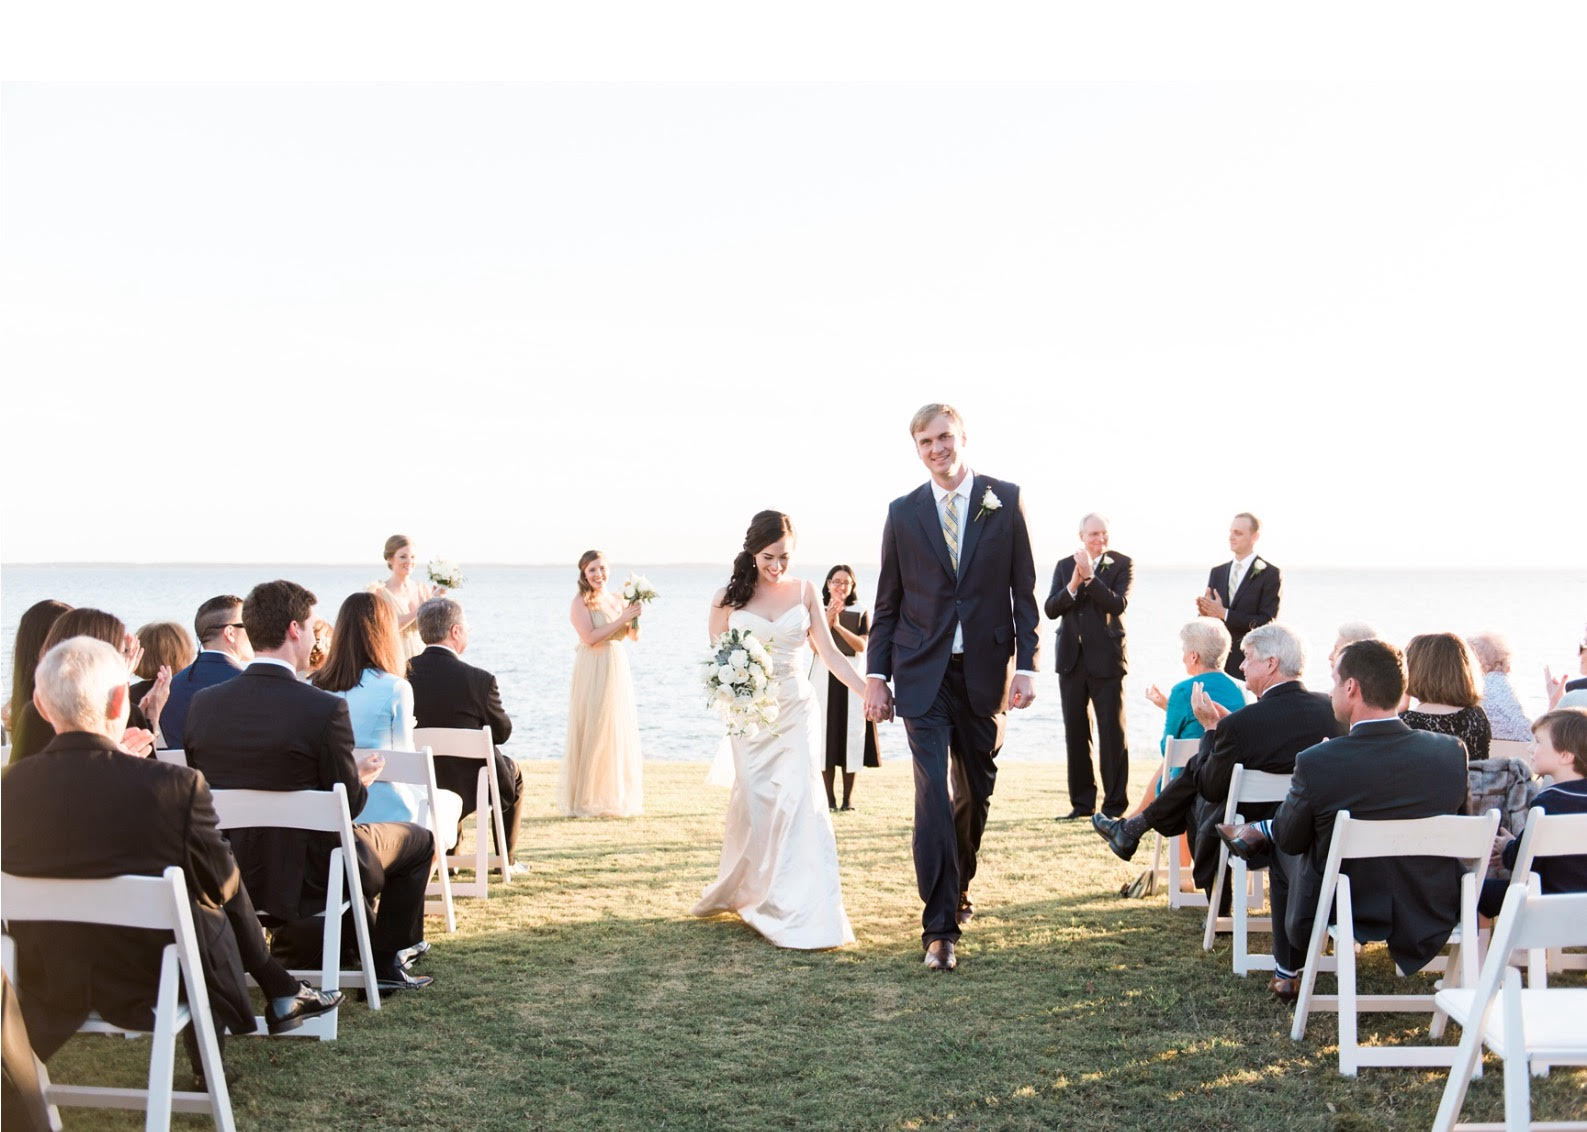 Edenton is one of the best places to get married in NC!